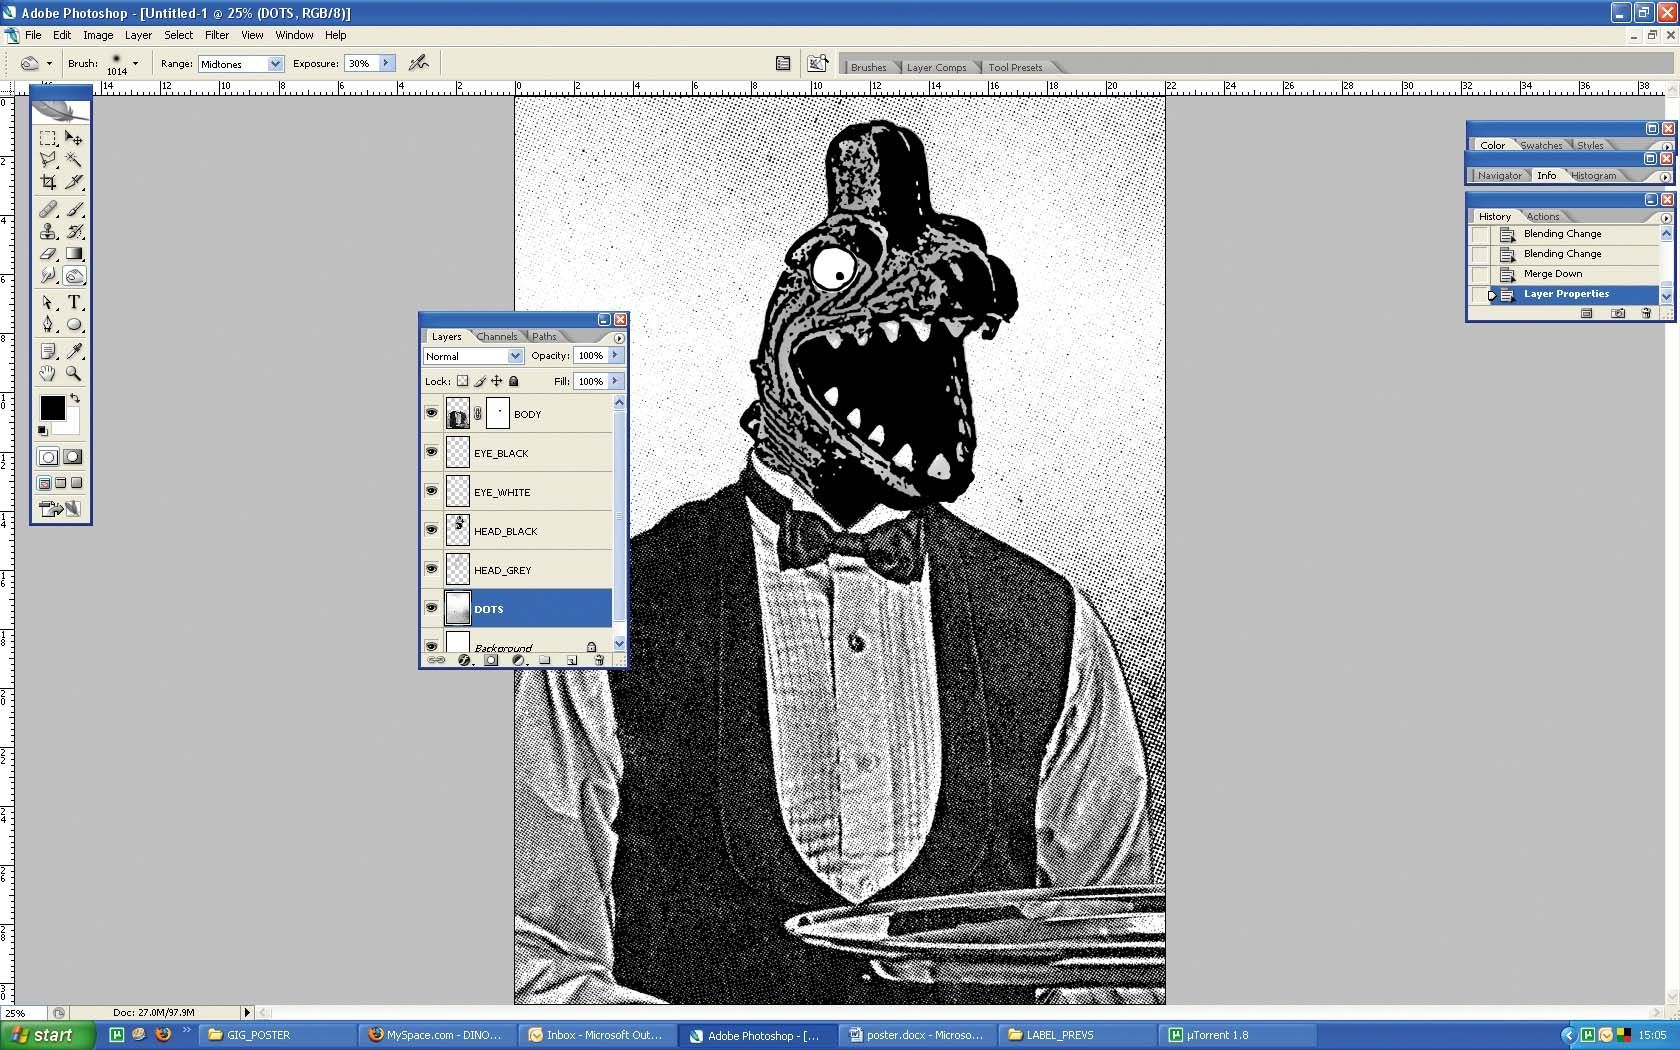 Photoshop tutorial: Create halftone and screenprint poster styles in Photoshop - Digital Arts